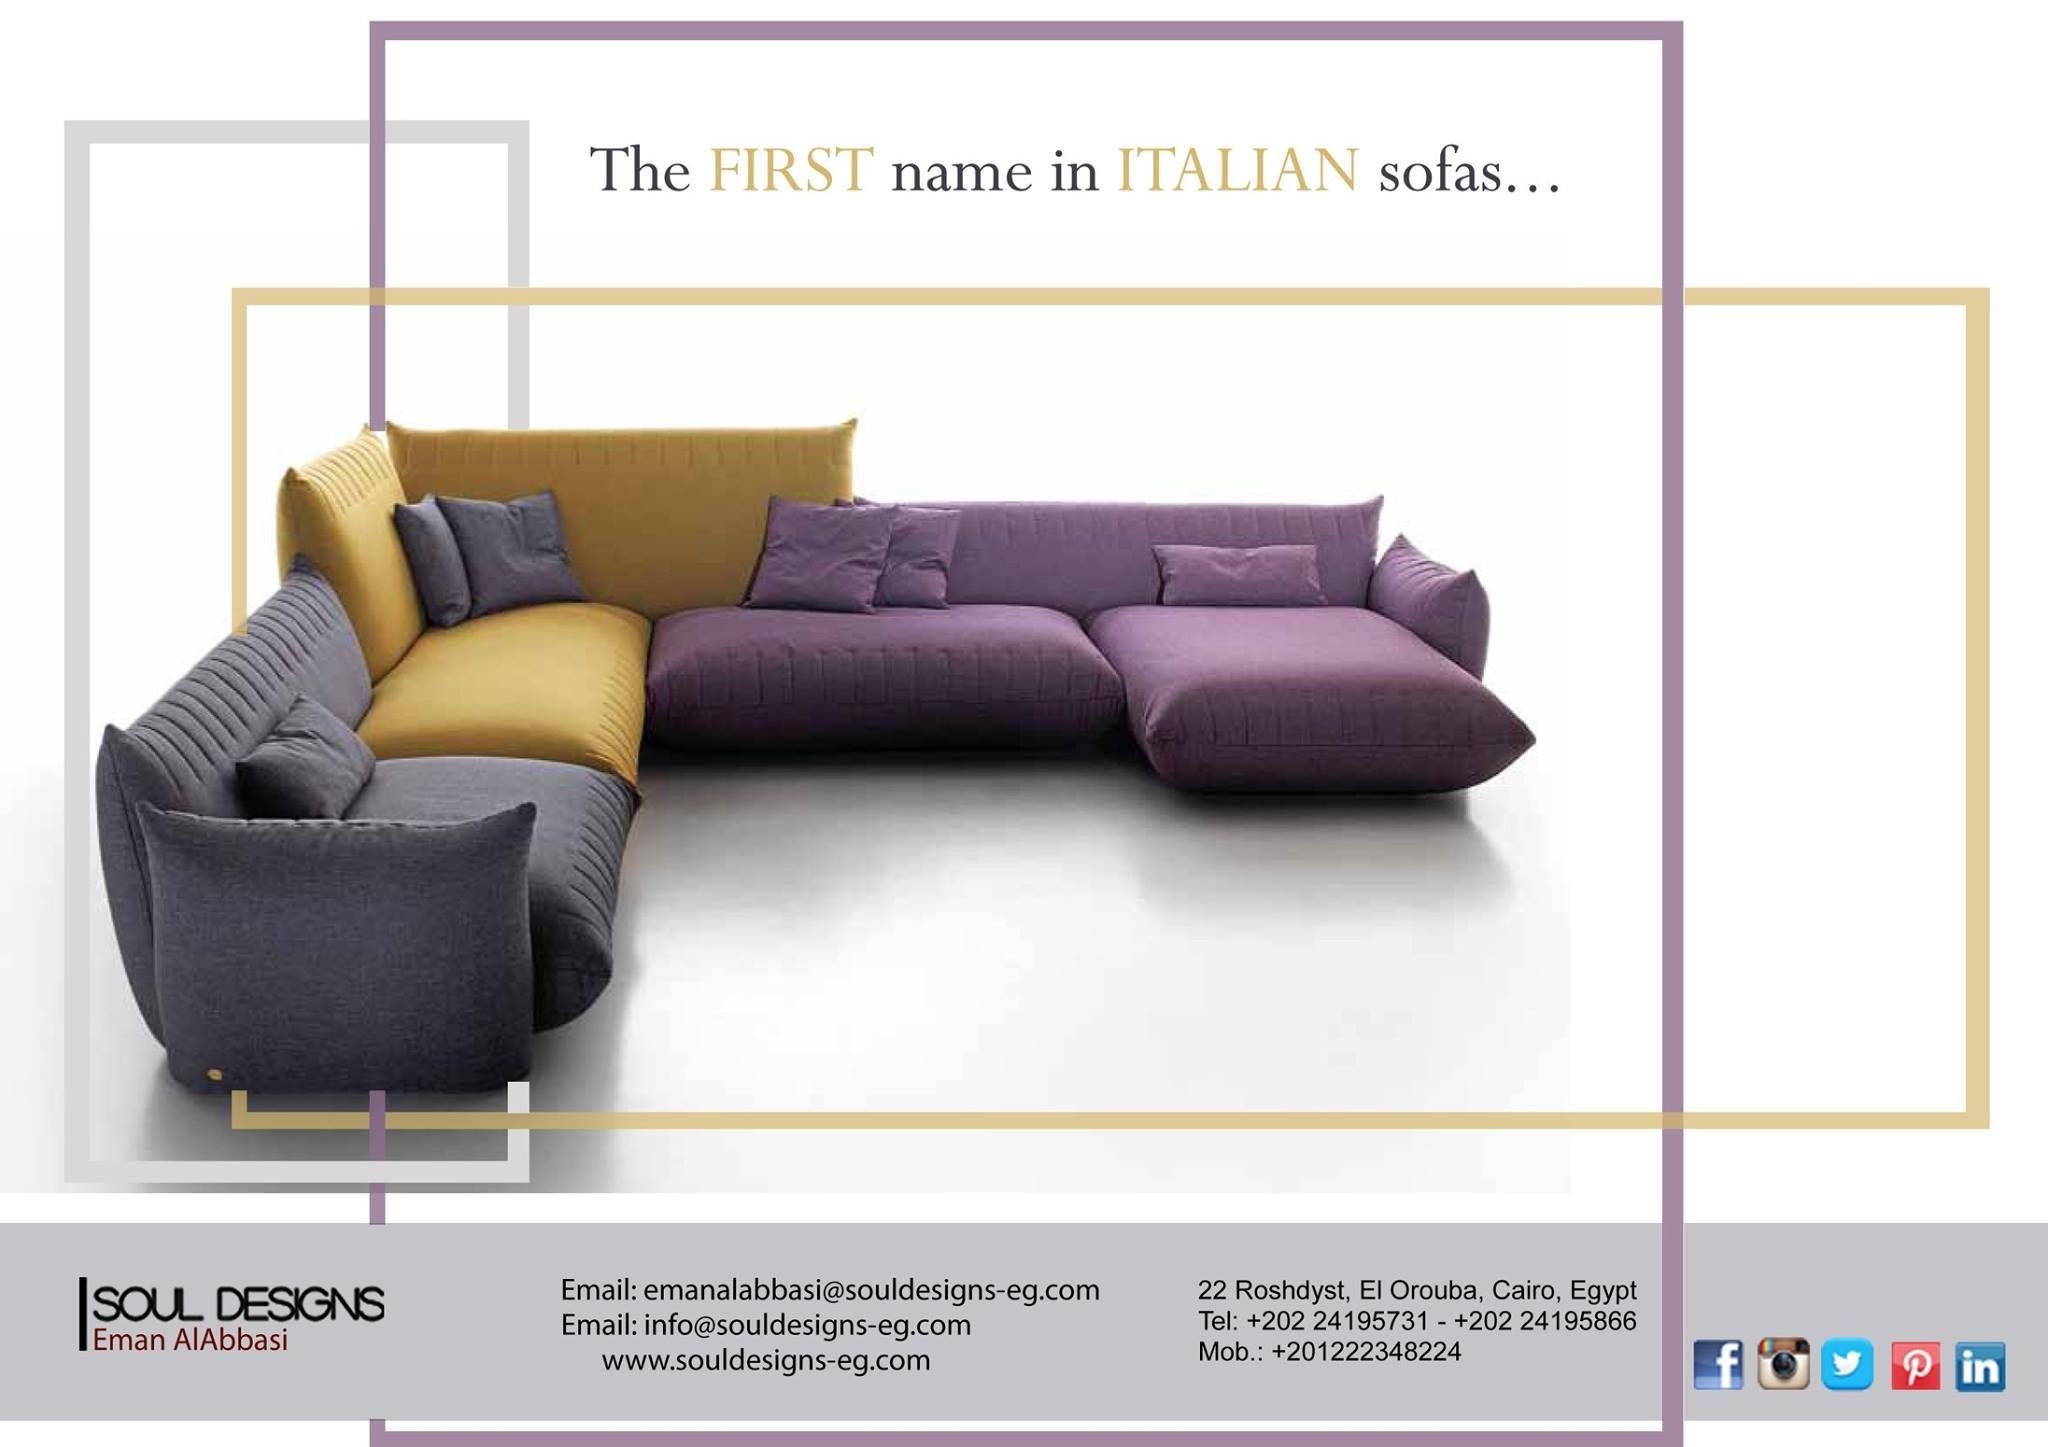 The First Name Is Italian Sofas - Italian Furniture Brought